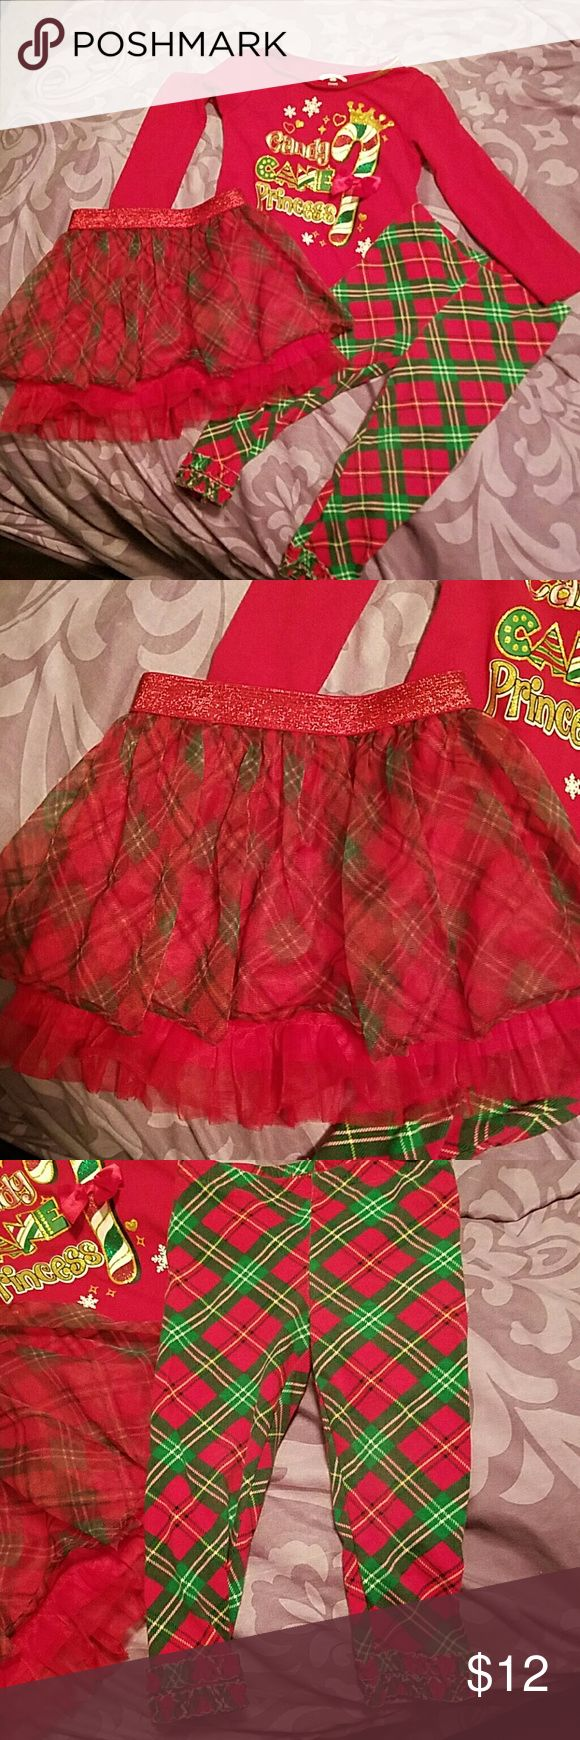 3 piece Christmas outfit  2t Really cute outfit comes with leggings and tutu skirt shirt says candy cane Princess.. Other